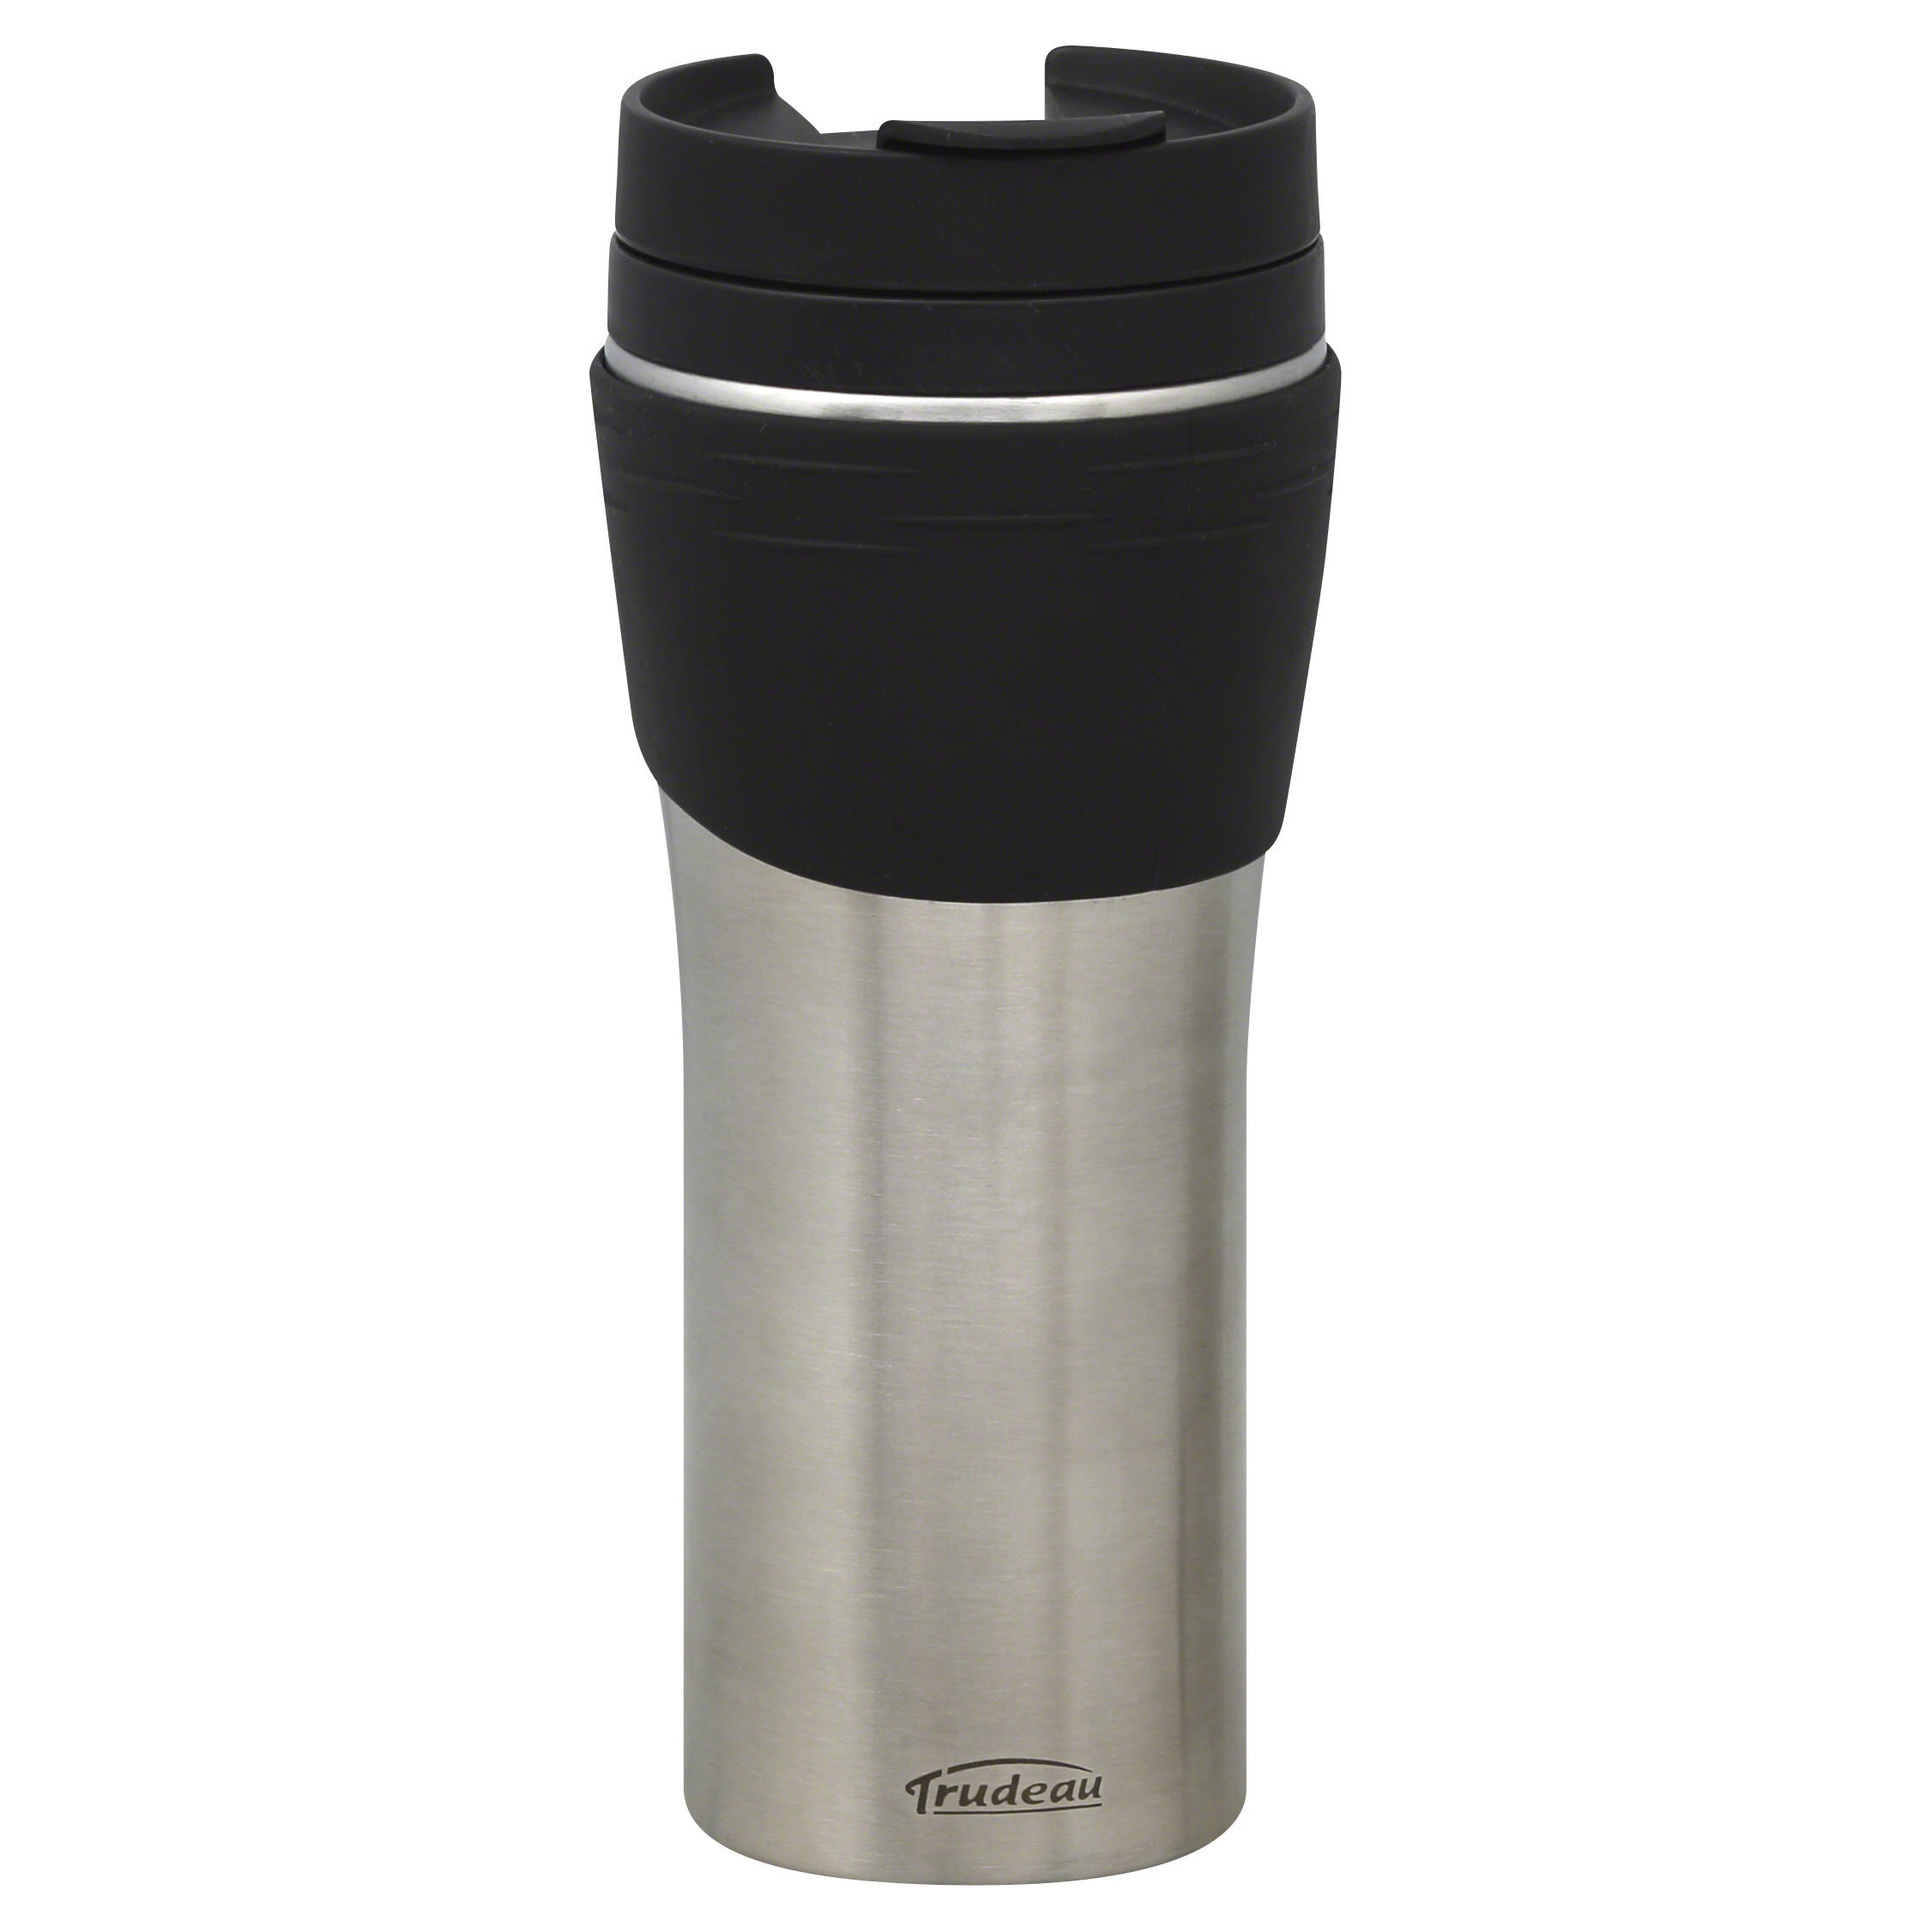 Trudeau 04715701 Stainless Steel Travel Tumbler - 16oz